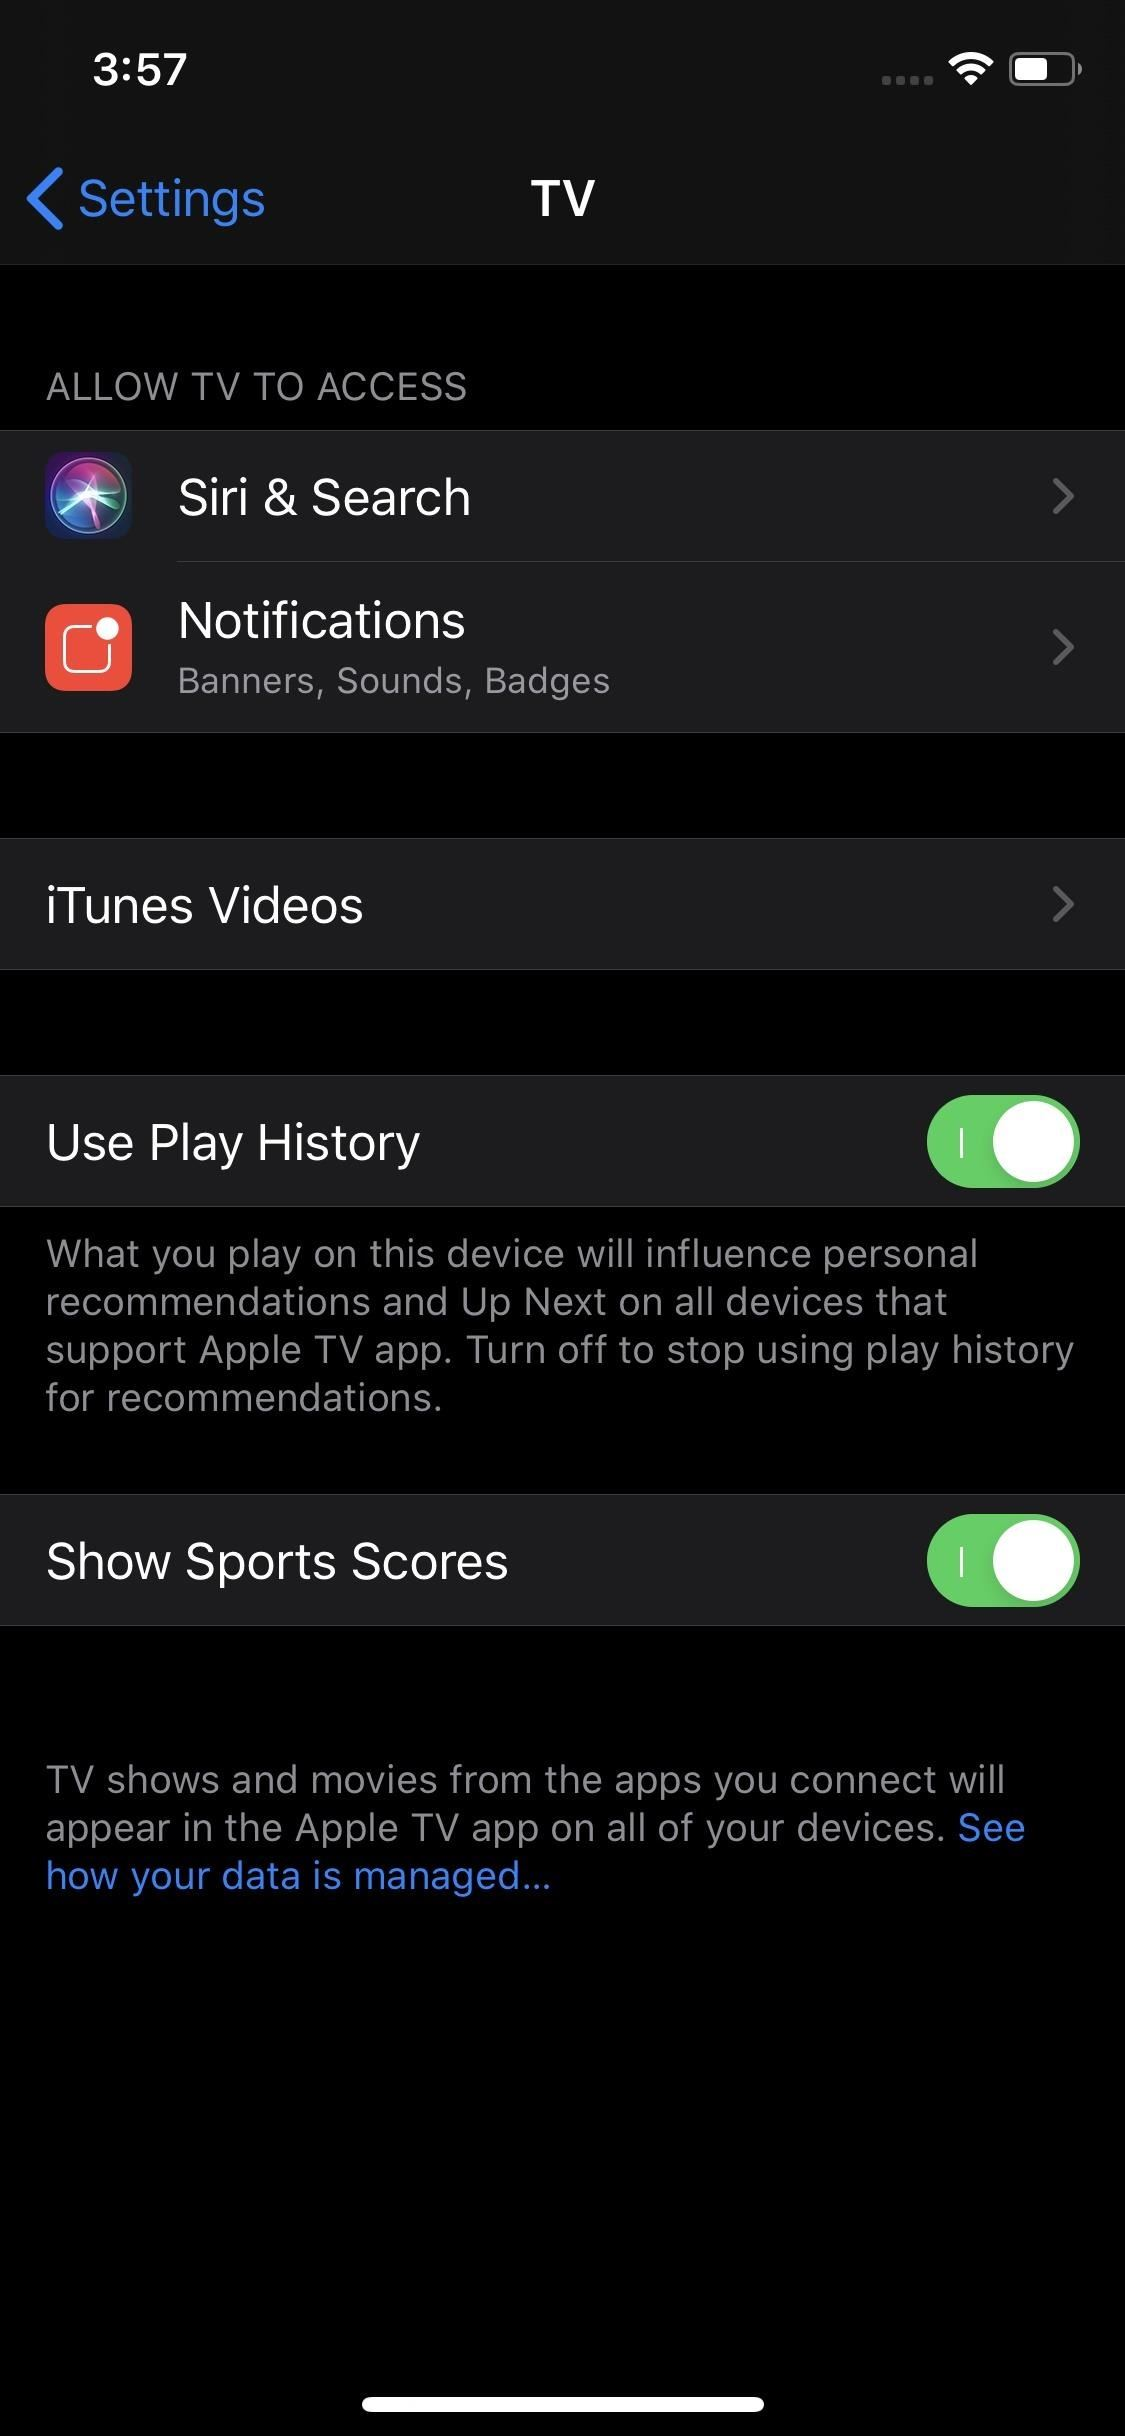 Apple releases iOS 13.4 Public Beta 2 for iPhone with new TV settings and email shortcuts